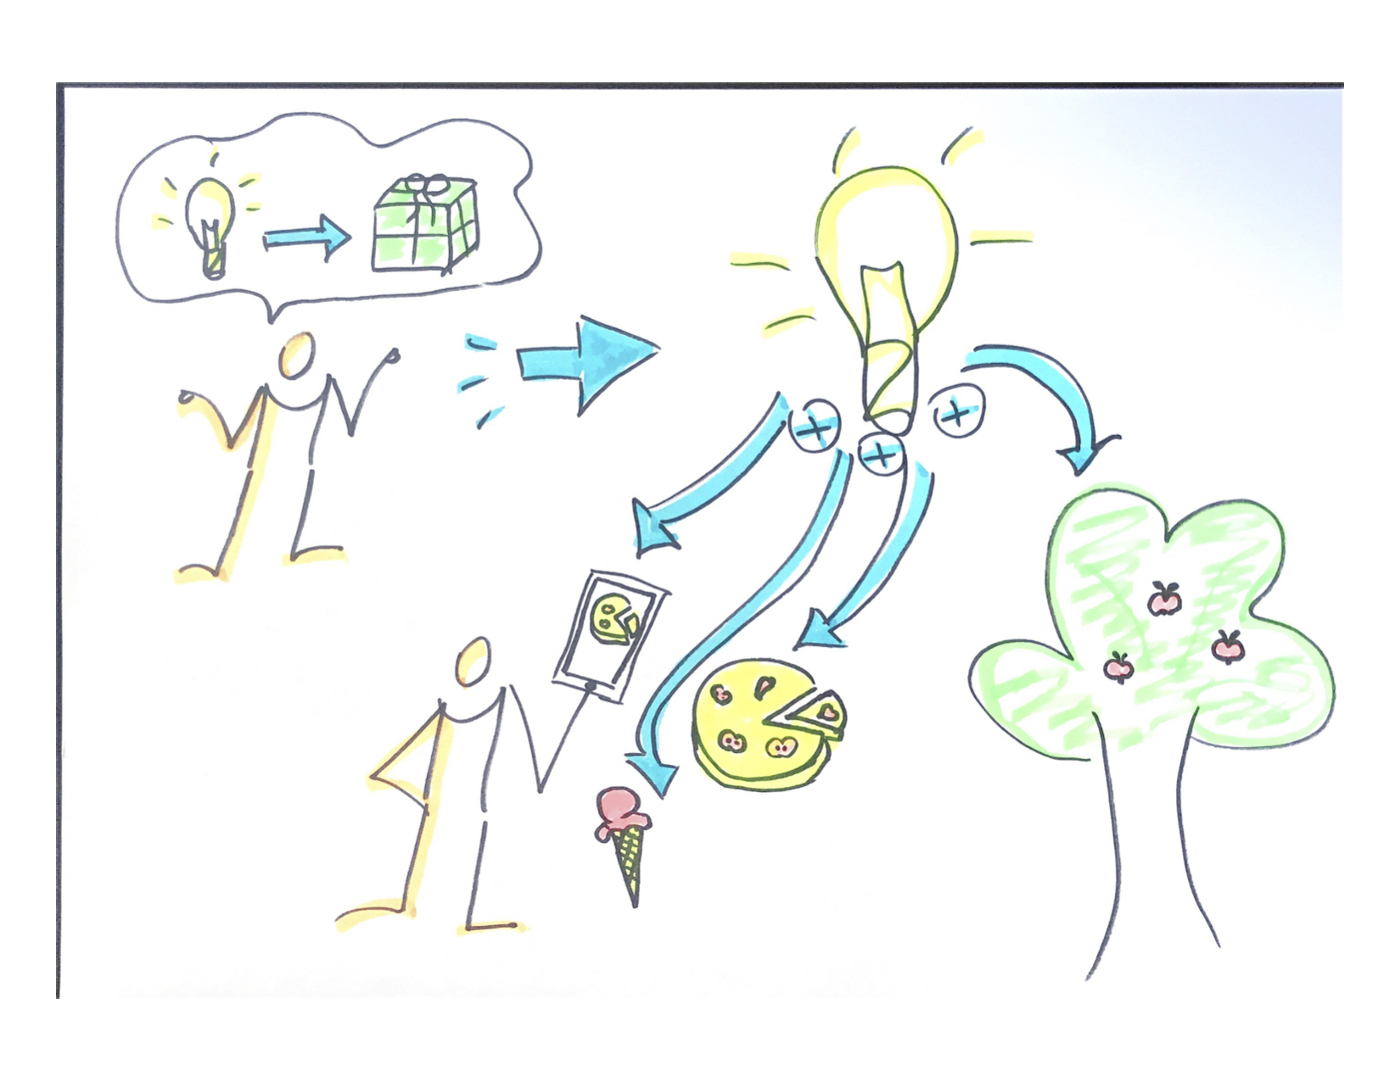 Writing User stories in agile is a very important skill that any Scrum team must master.